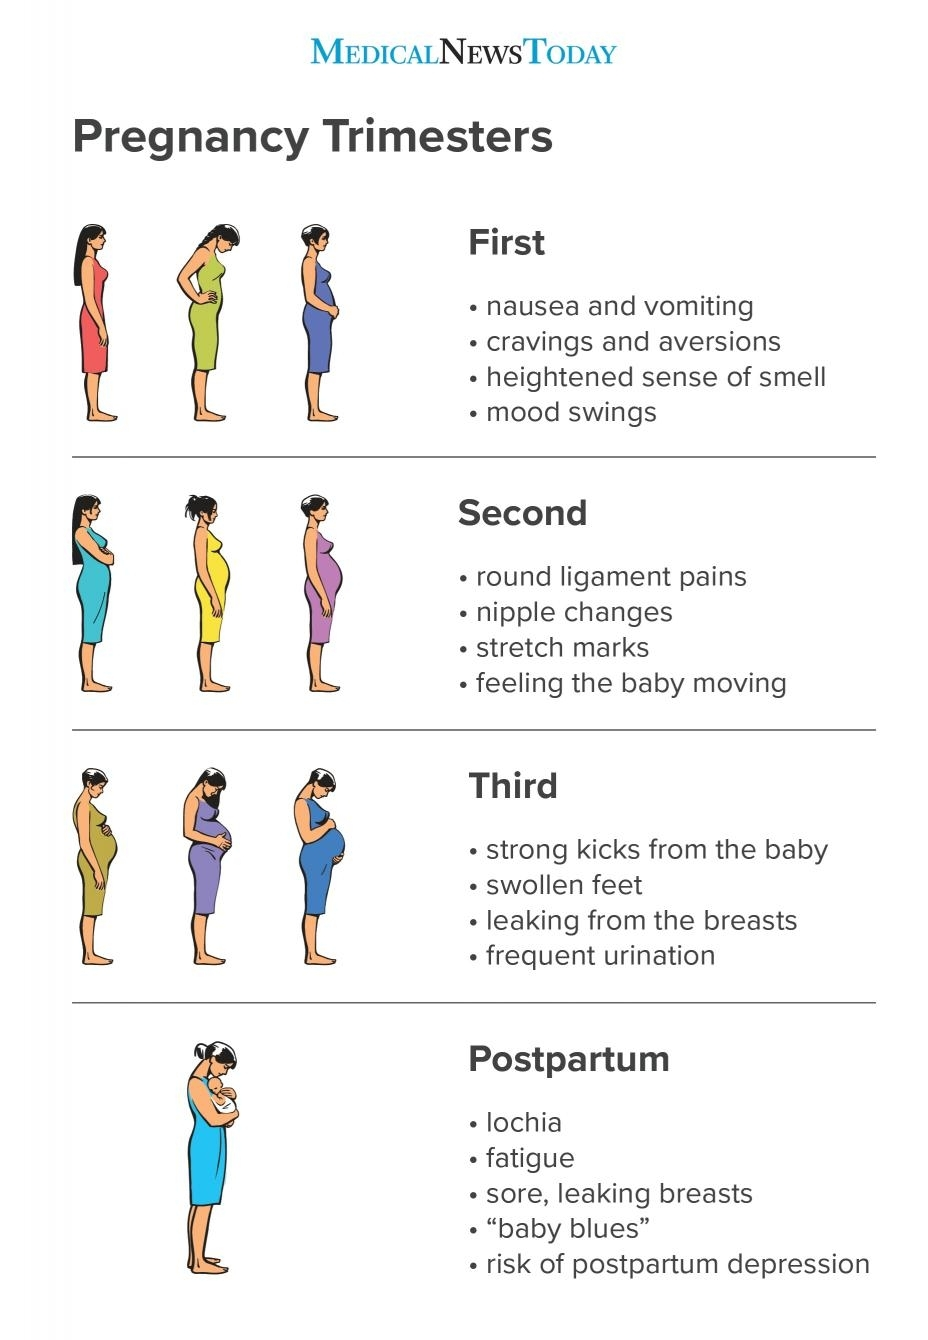 Pregnancy Trimesters: Everything You Need To Know for Pregnancy Timeline Week By Week